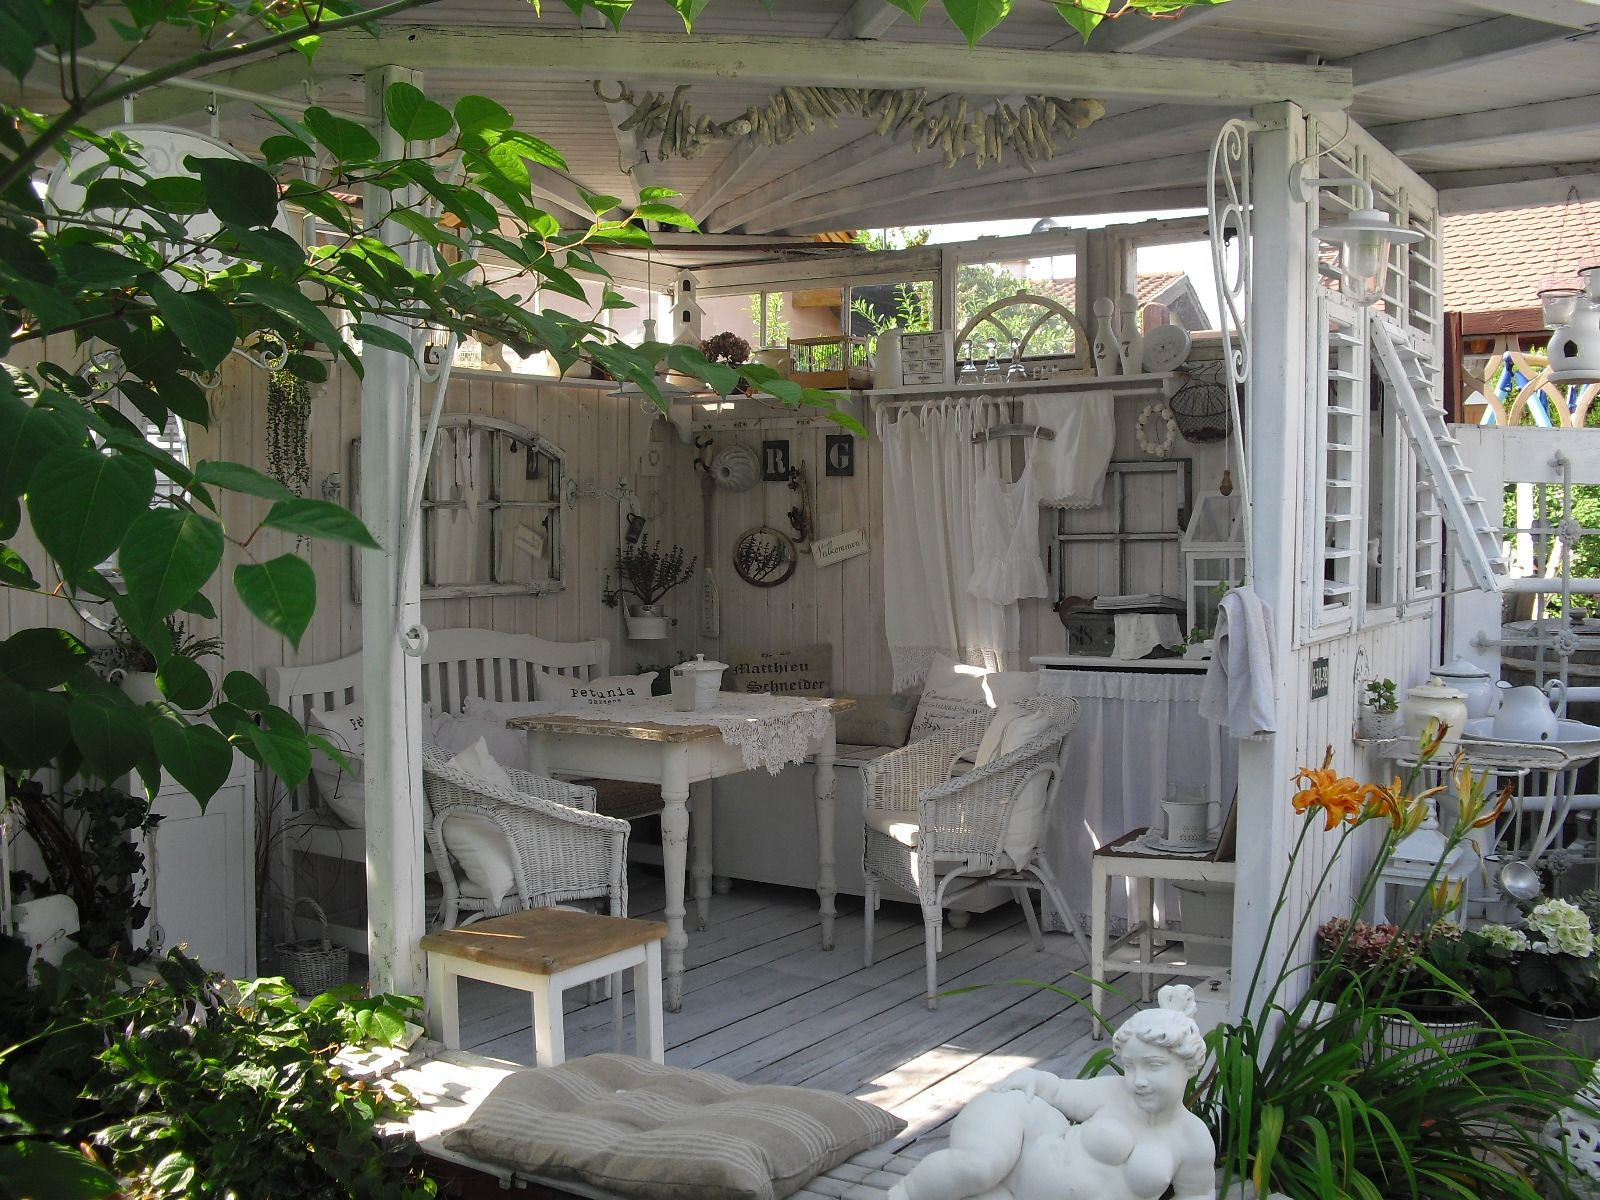 gartenhaus perfect tea house for the back yard pergola. Black Bedroom Furniture Sets. Home Design Ideas